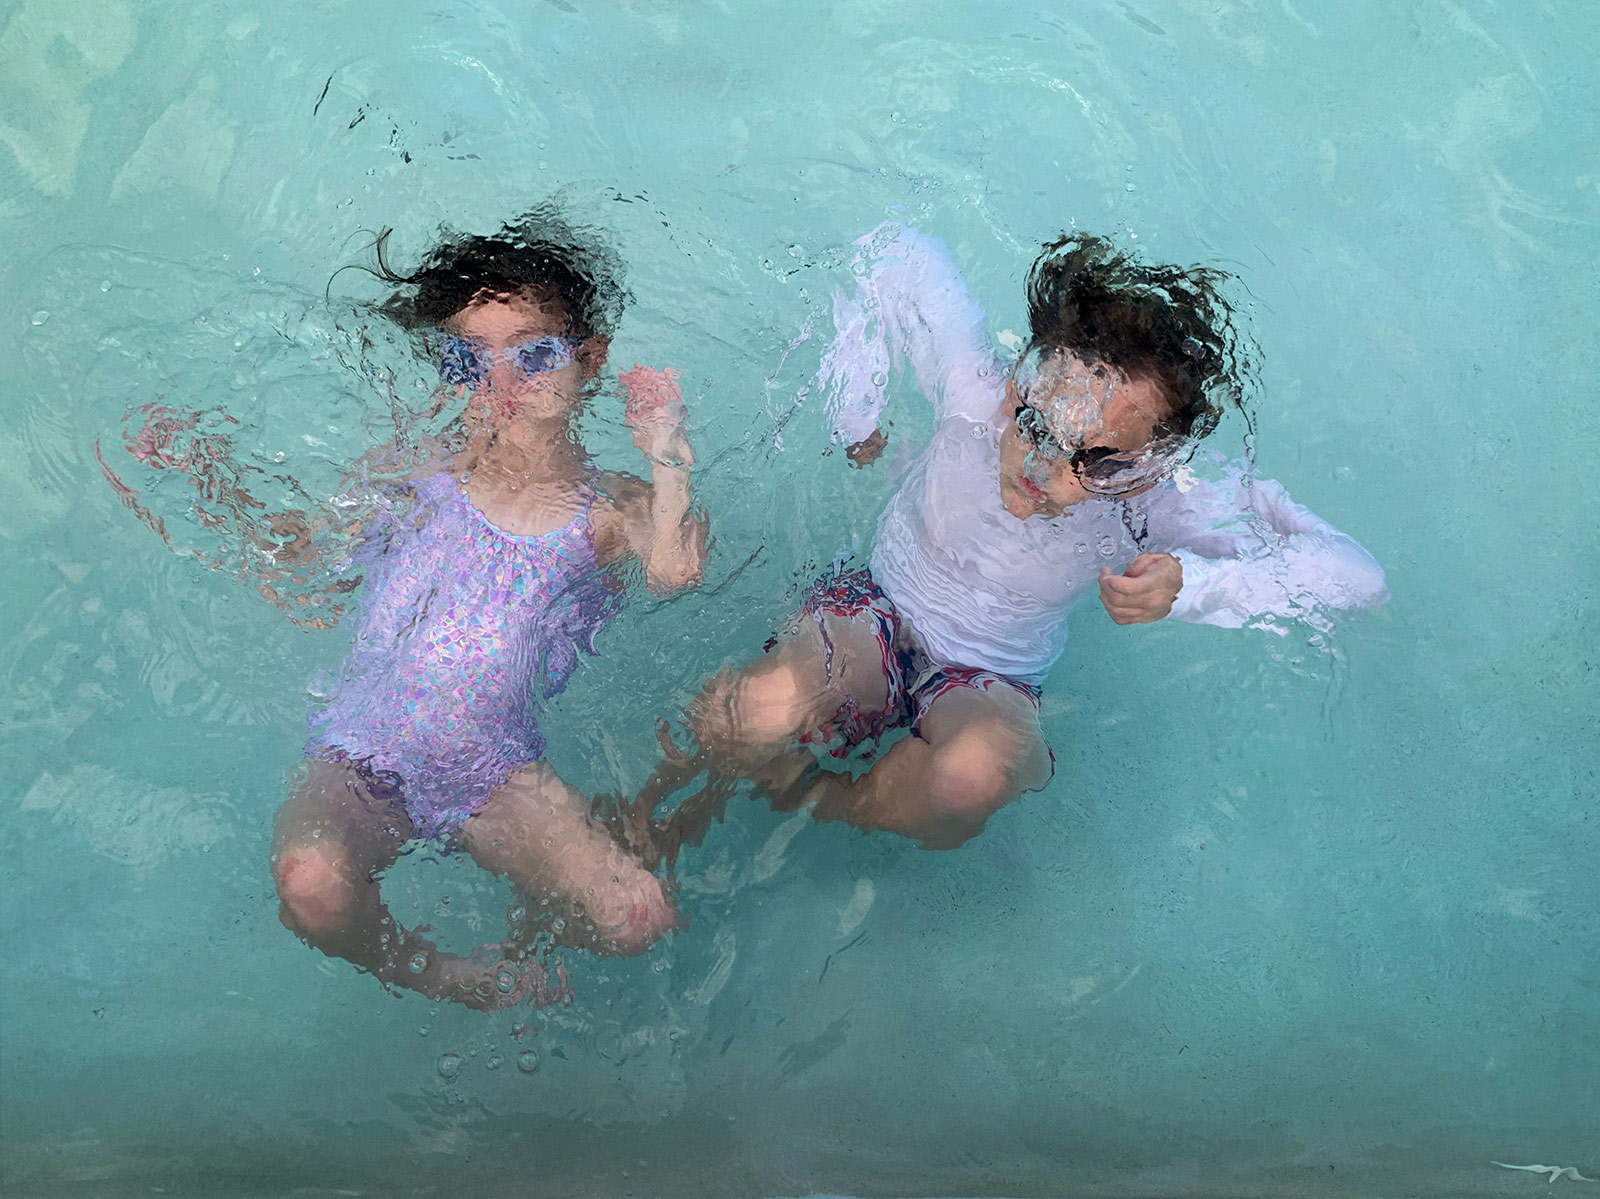 Kids underwater in a swimming pool, taken with iPhone